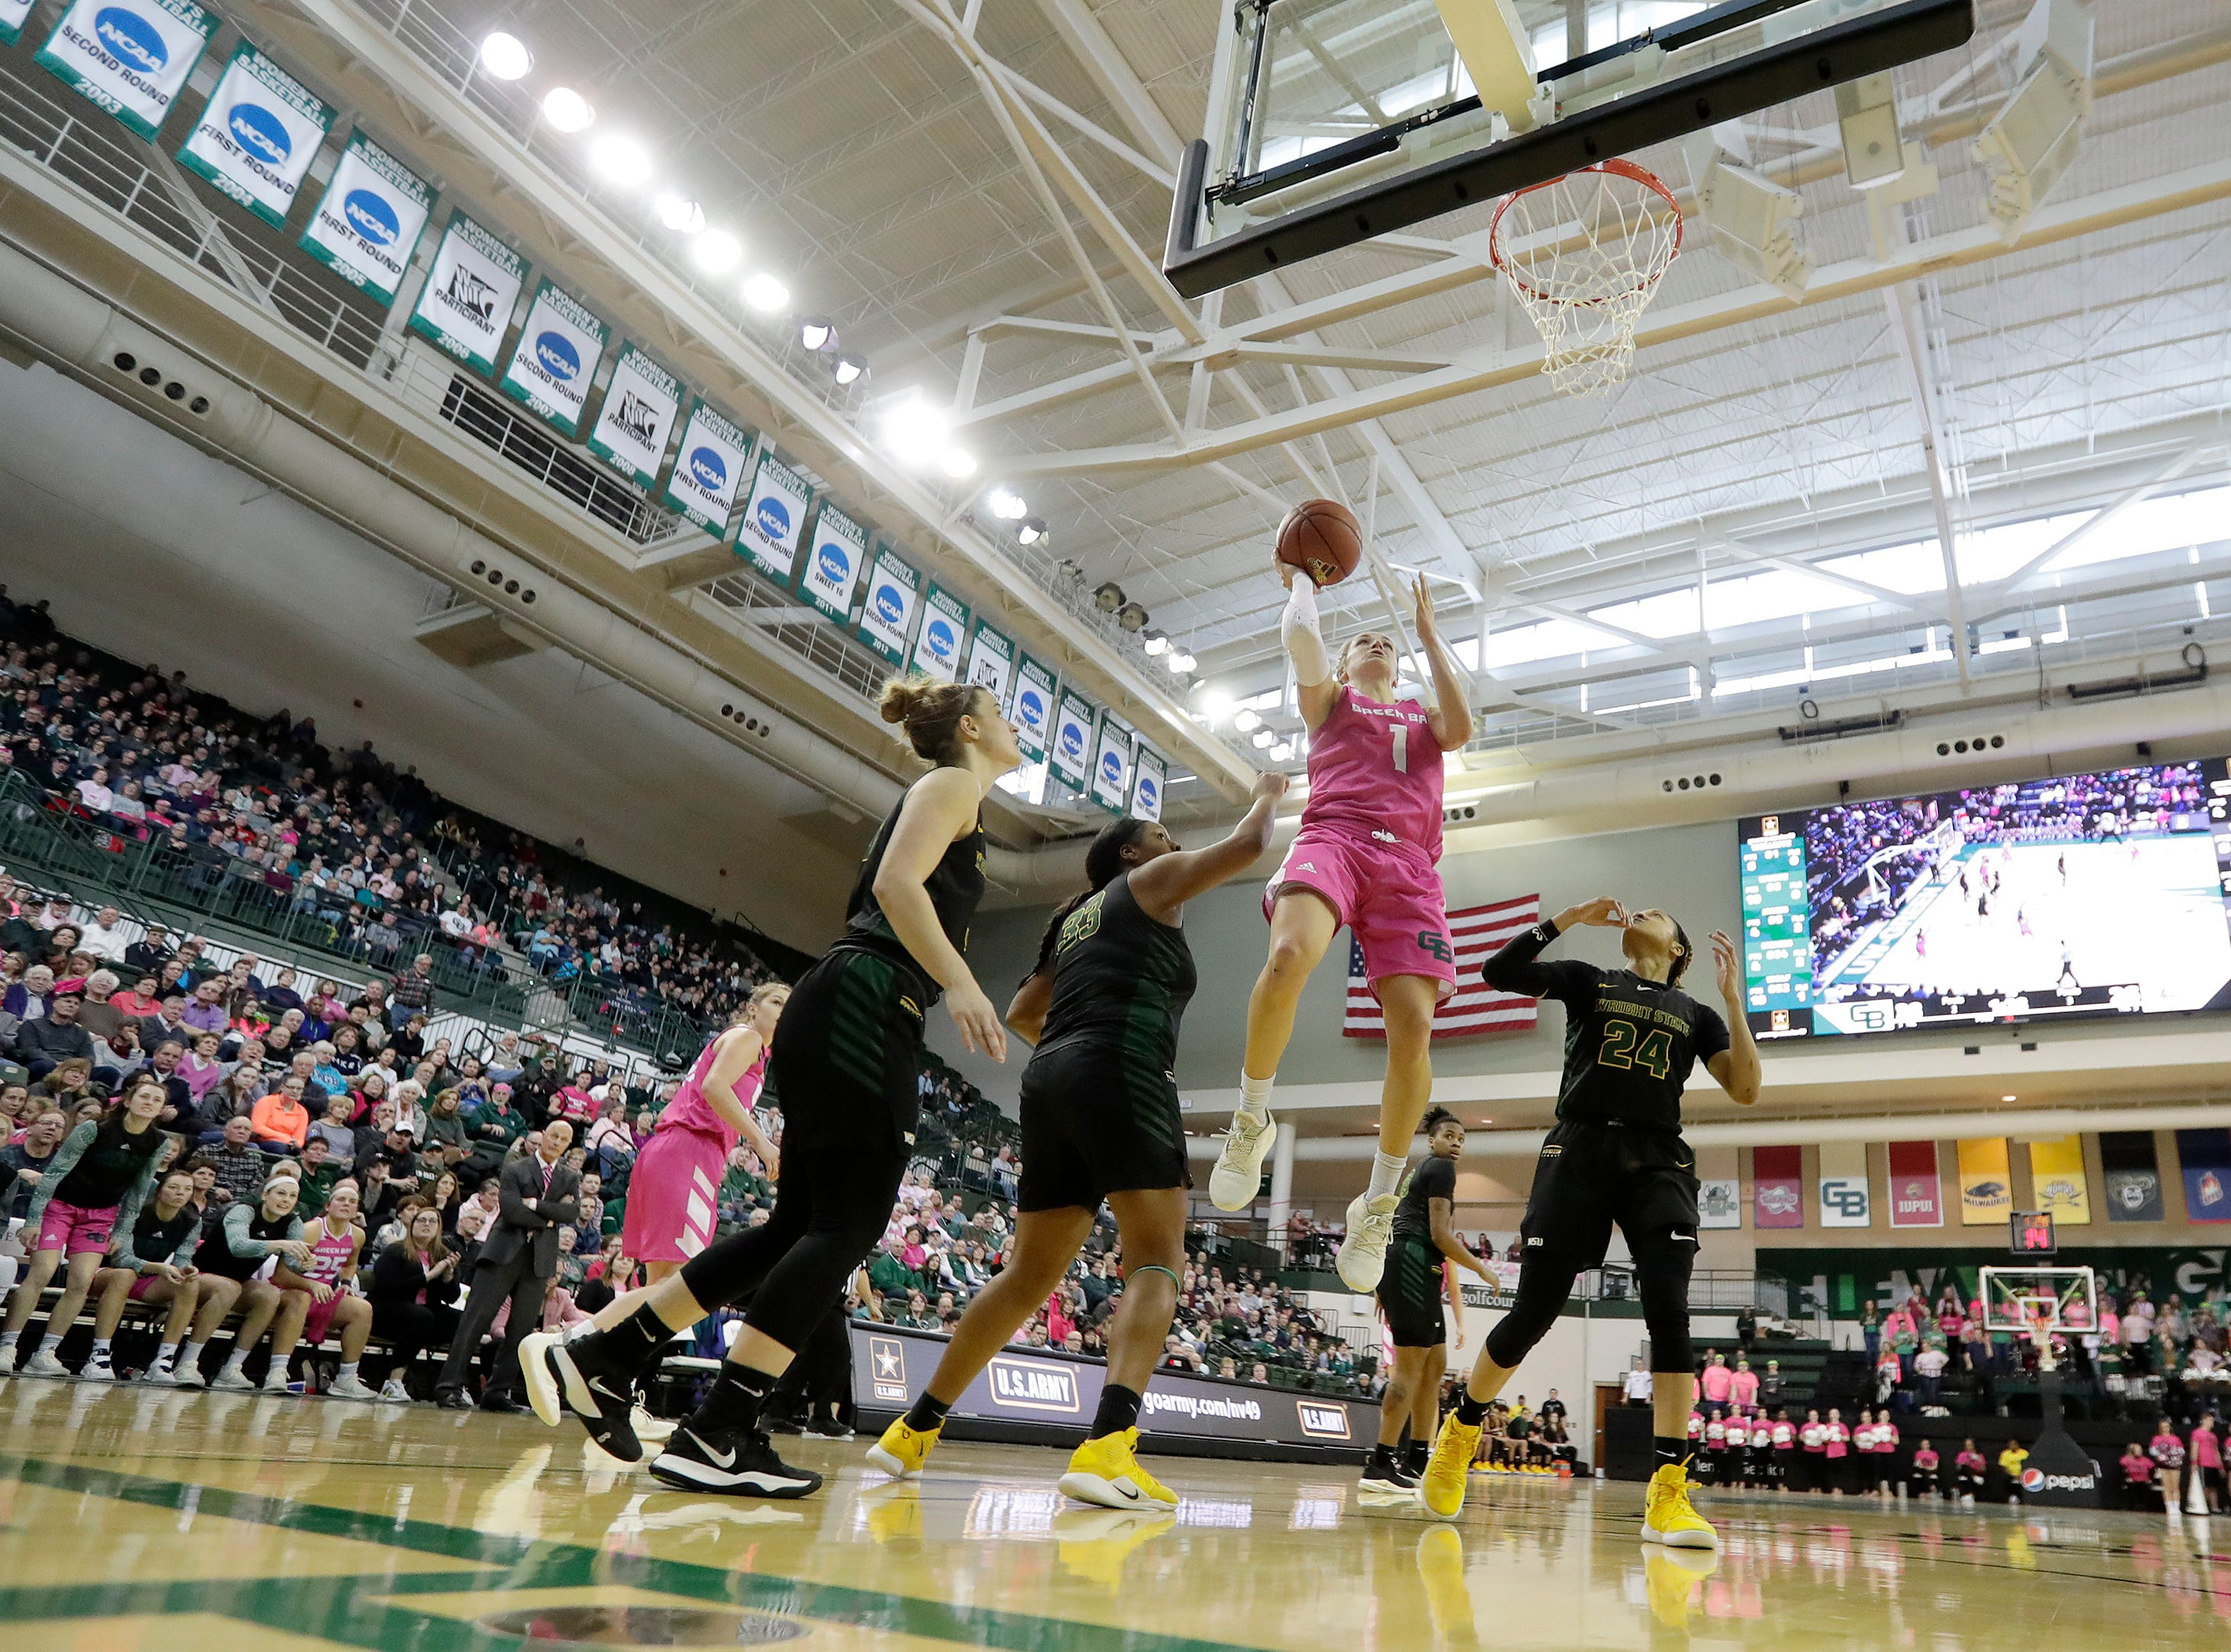 Green Bay Phoenix guard Jen Wellnitz (1) shoots against the Wright State Raiders in a Horizon League women's basketball game at the Kress Center on Saturday, February 9, 2019 in Green Bay, Wis.